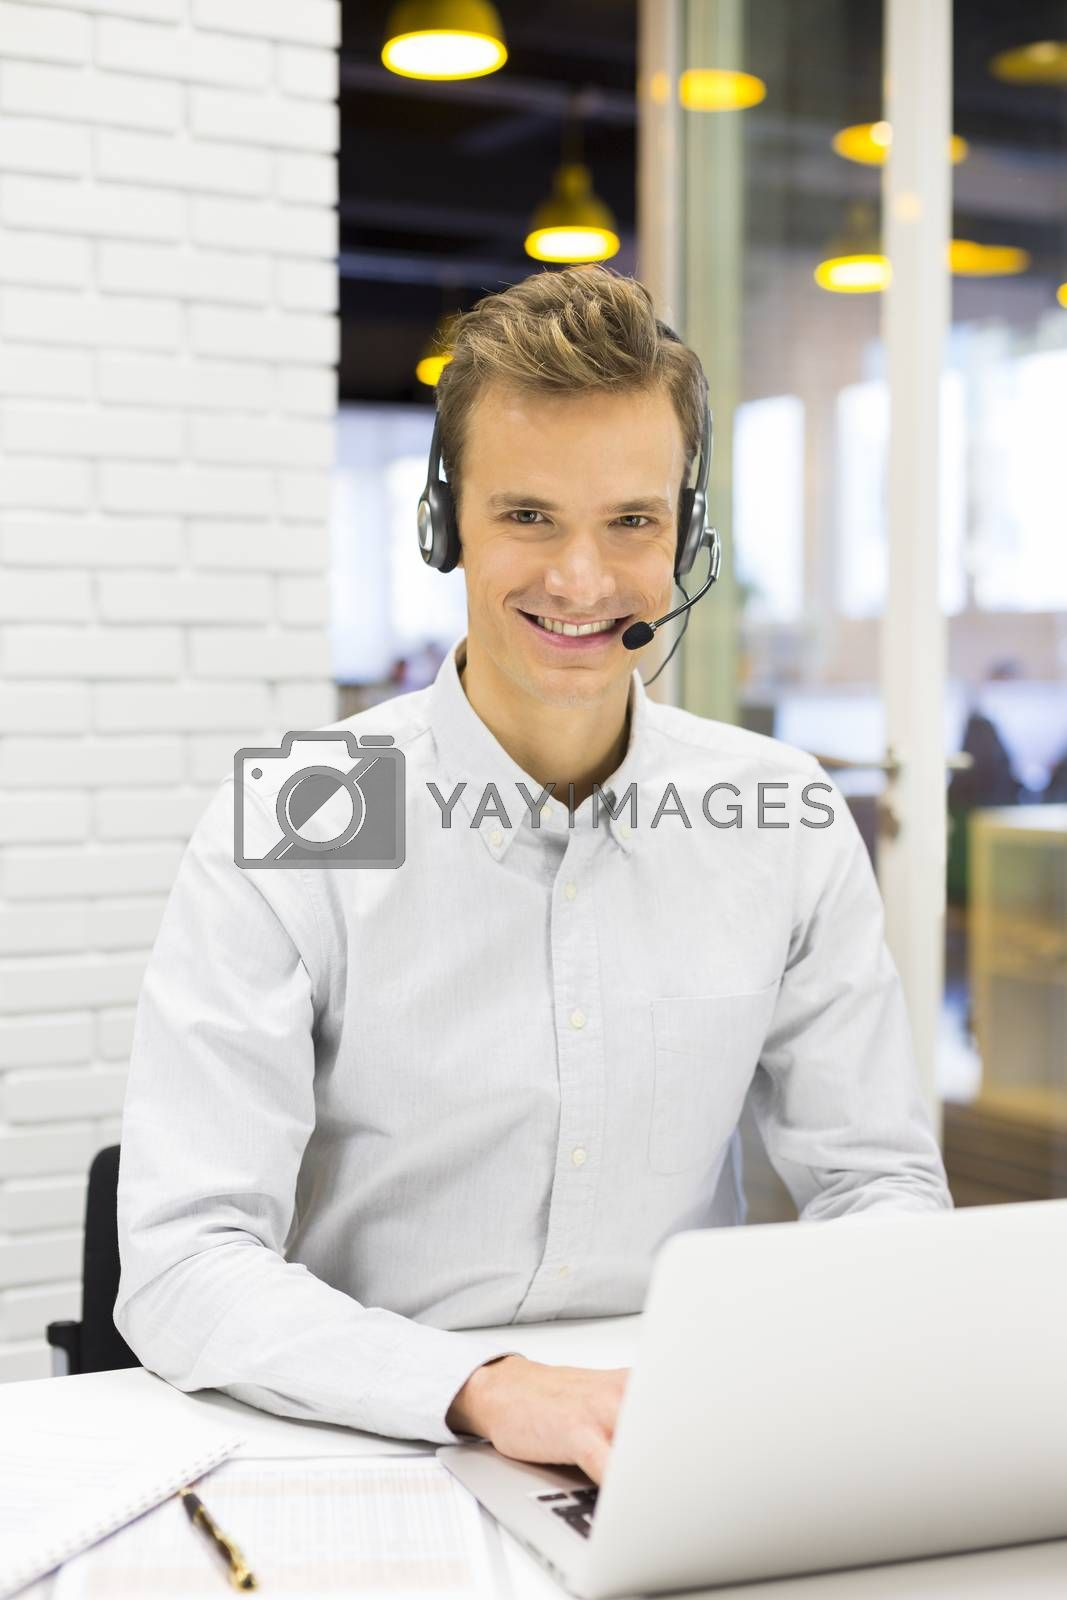 Male calling computer desk video conference looking camera